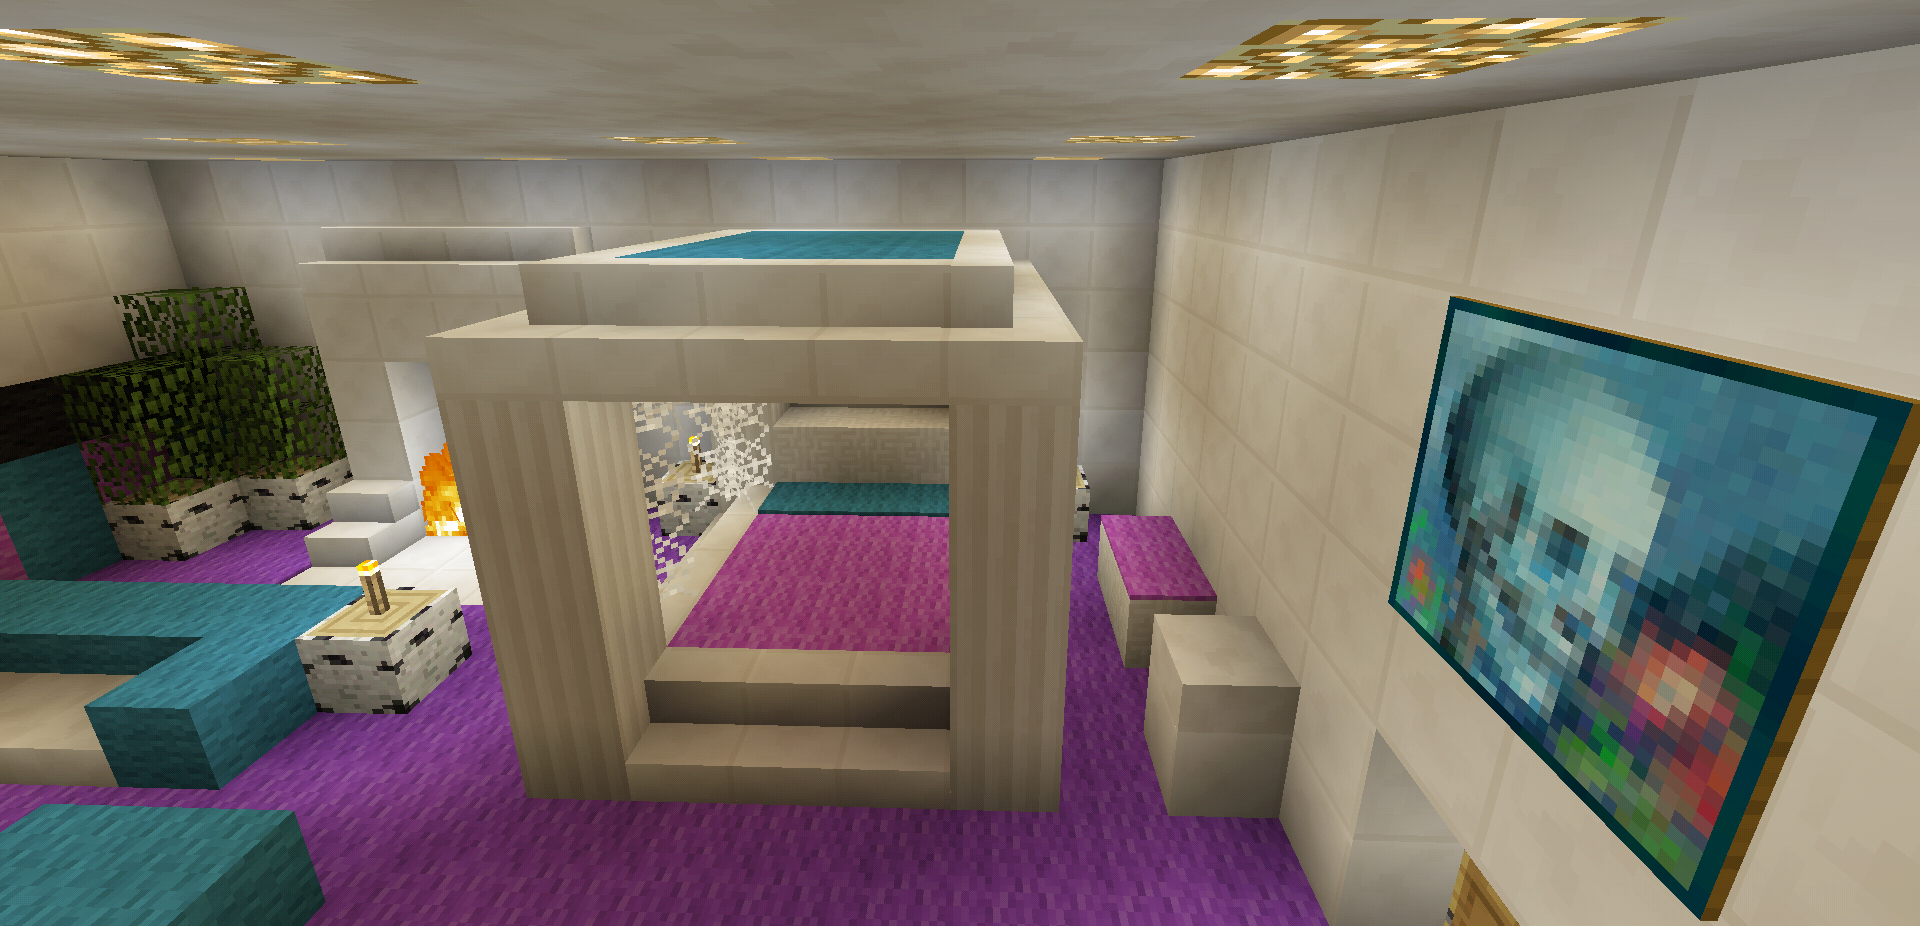 Minecraft Furniture Bedroom minecraft furniture - bedroom | amazing minecraft builds